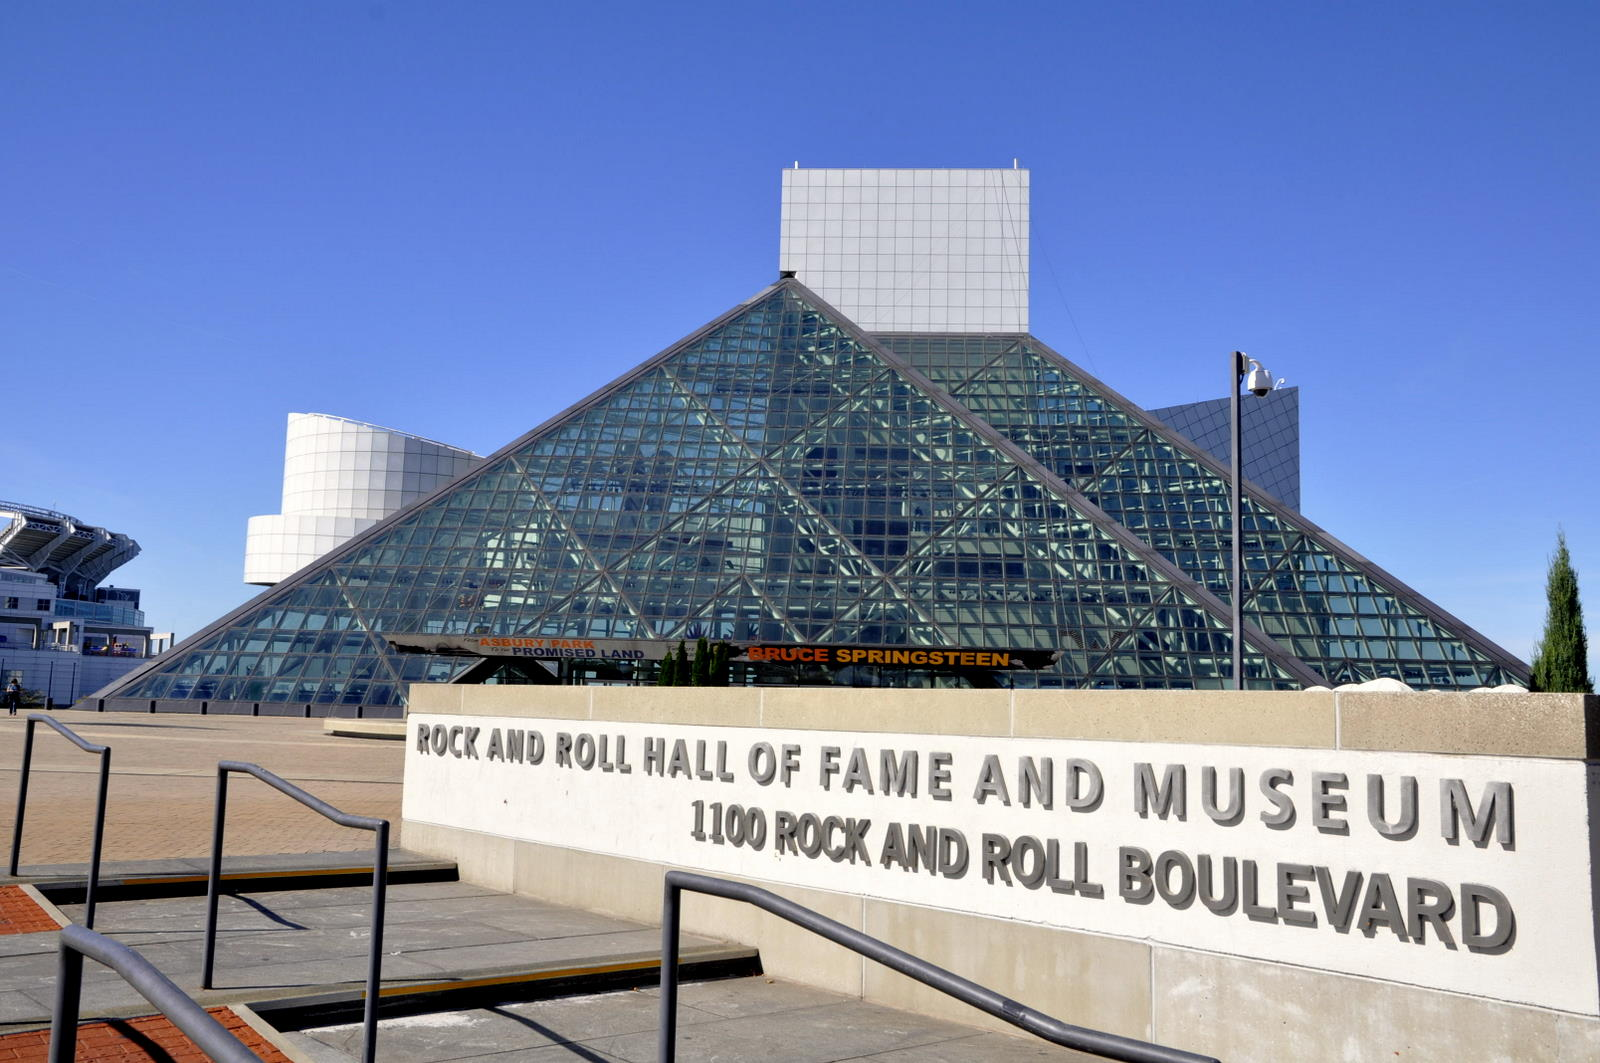 Rock N Roll Hall Of Fame Hours : cleveland rock and roll hall of fame museum exploring the world one day at a time ~ Vivirlamusica.com Haus und Dekorationen